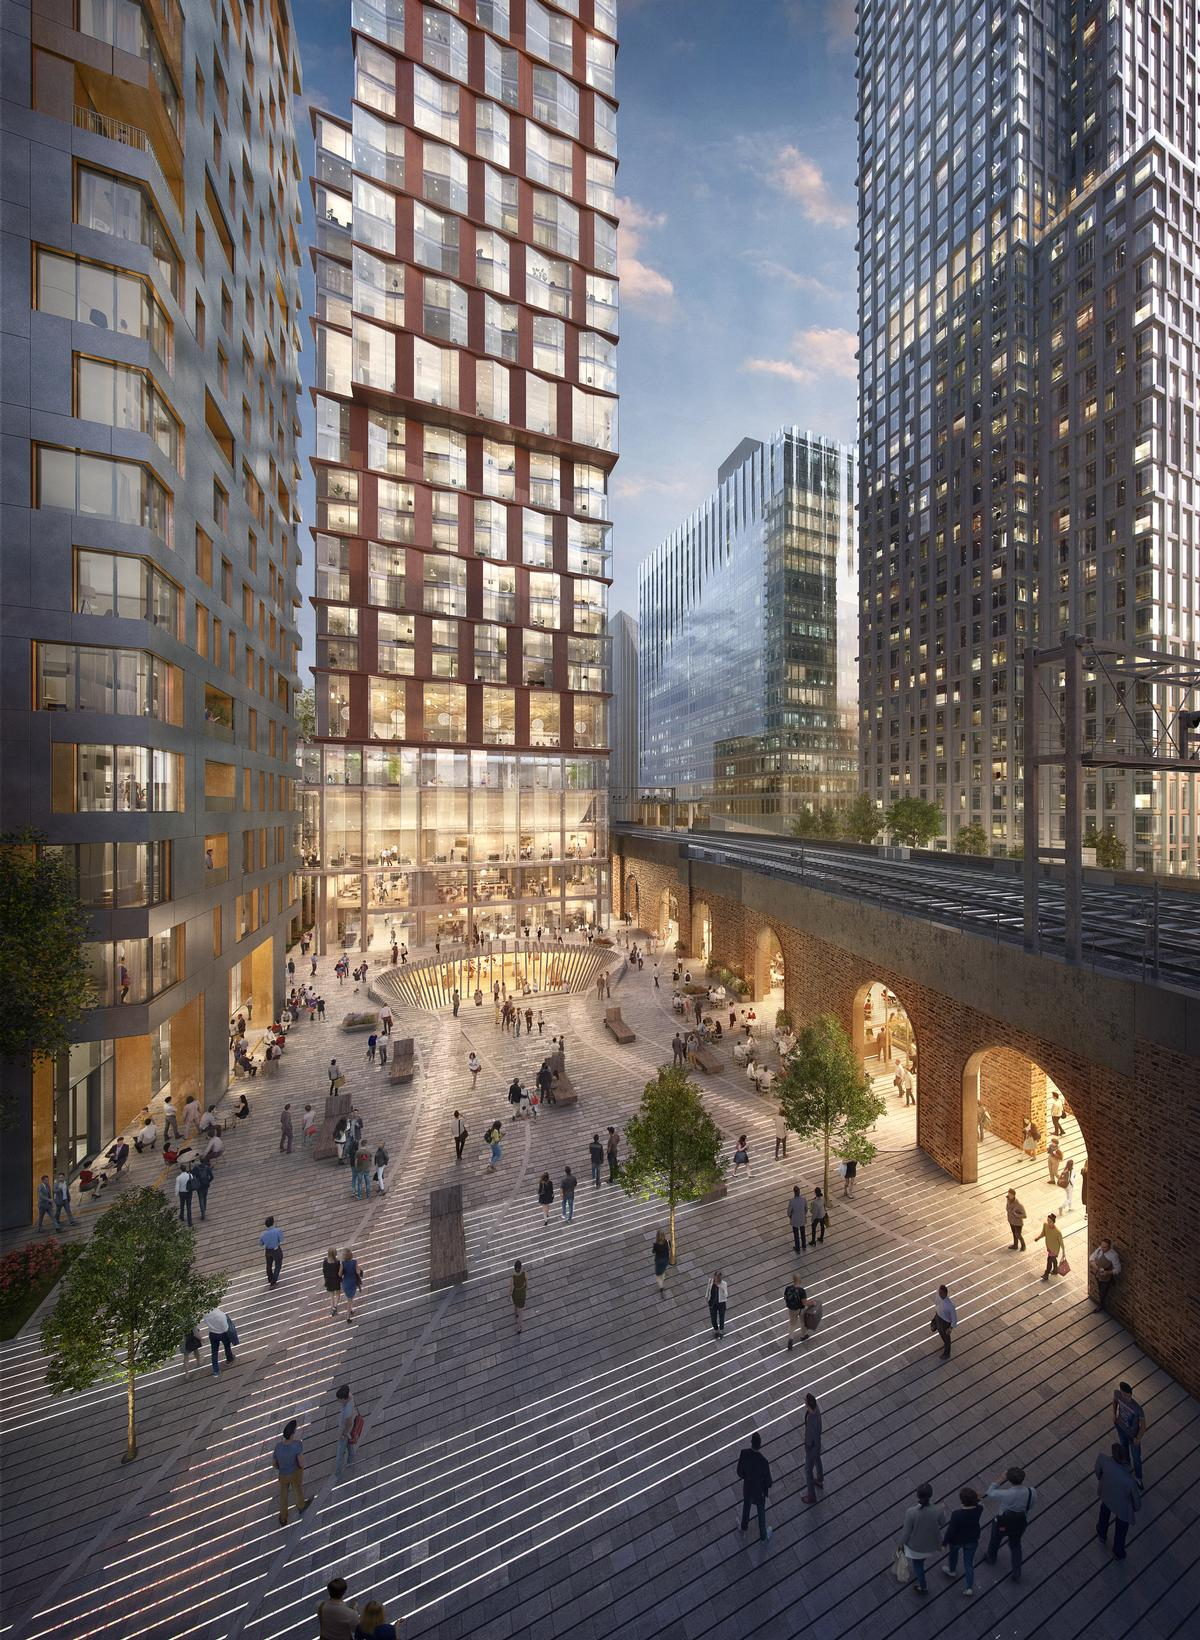 It will be based around a historic railway viaduct and will transform the structure to make use of its arches as retail, restaurant and cultural units